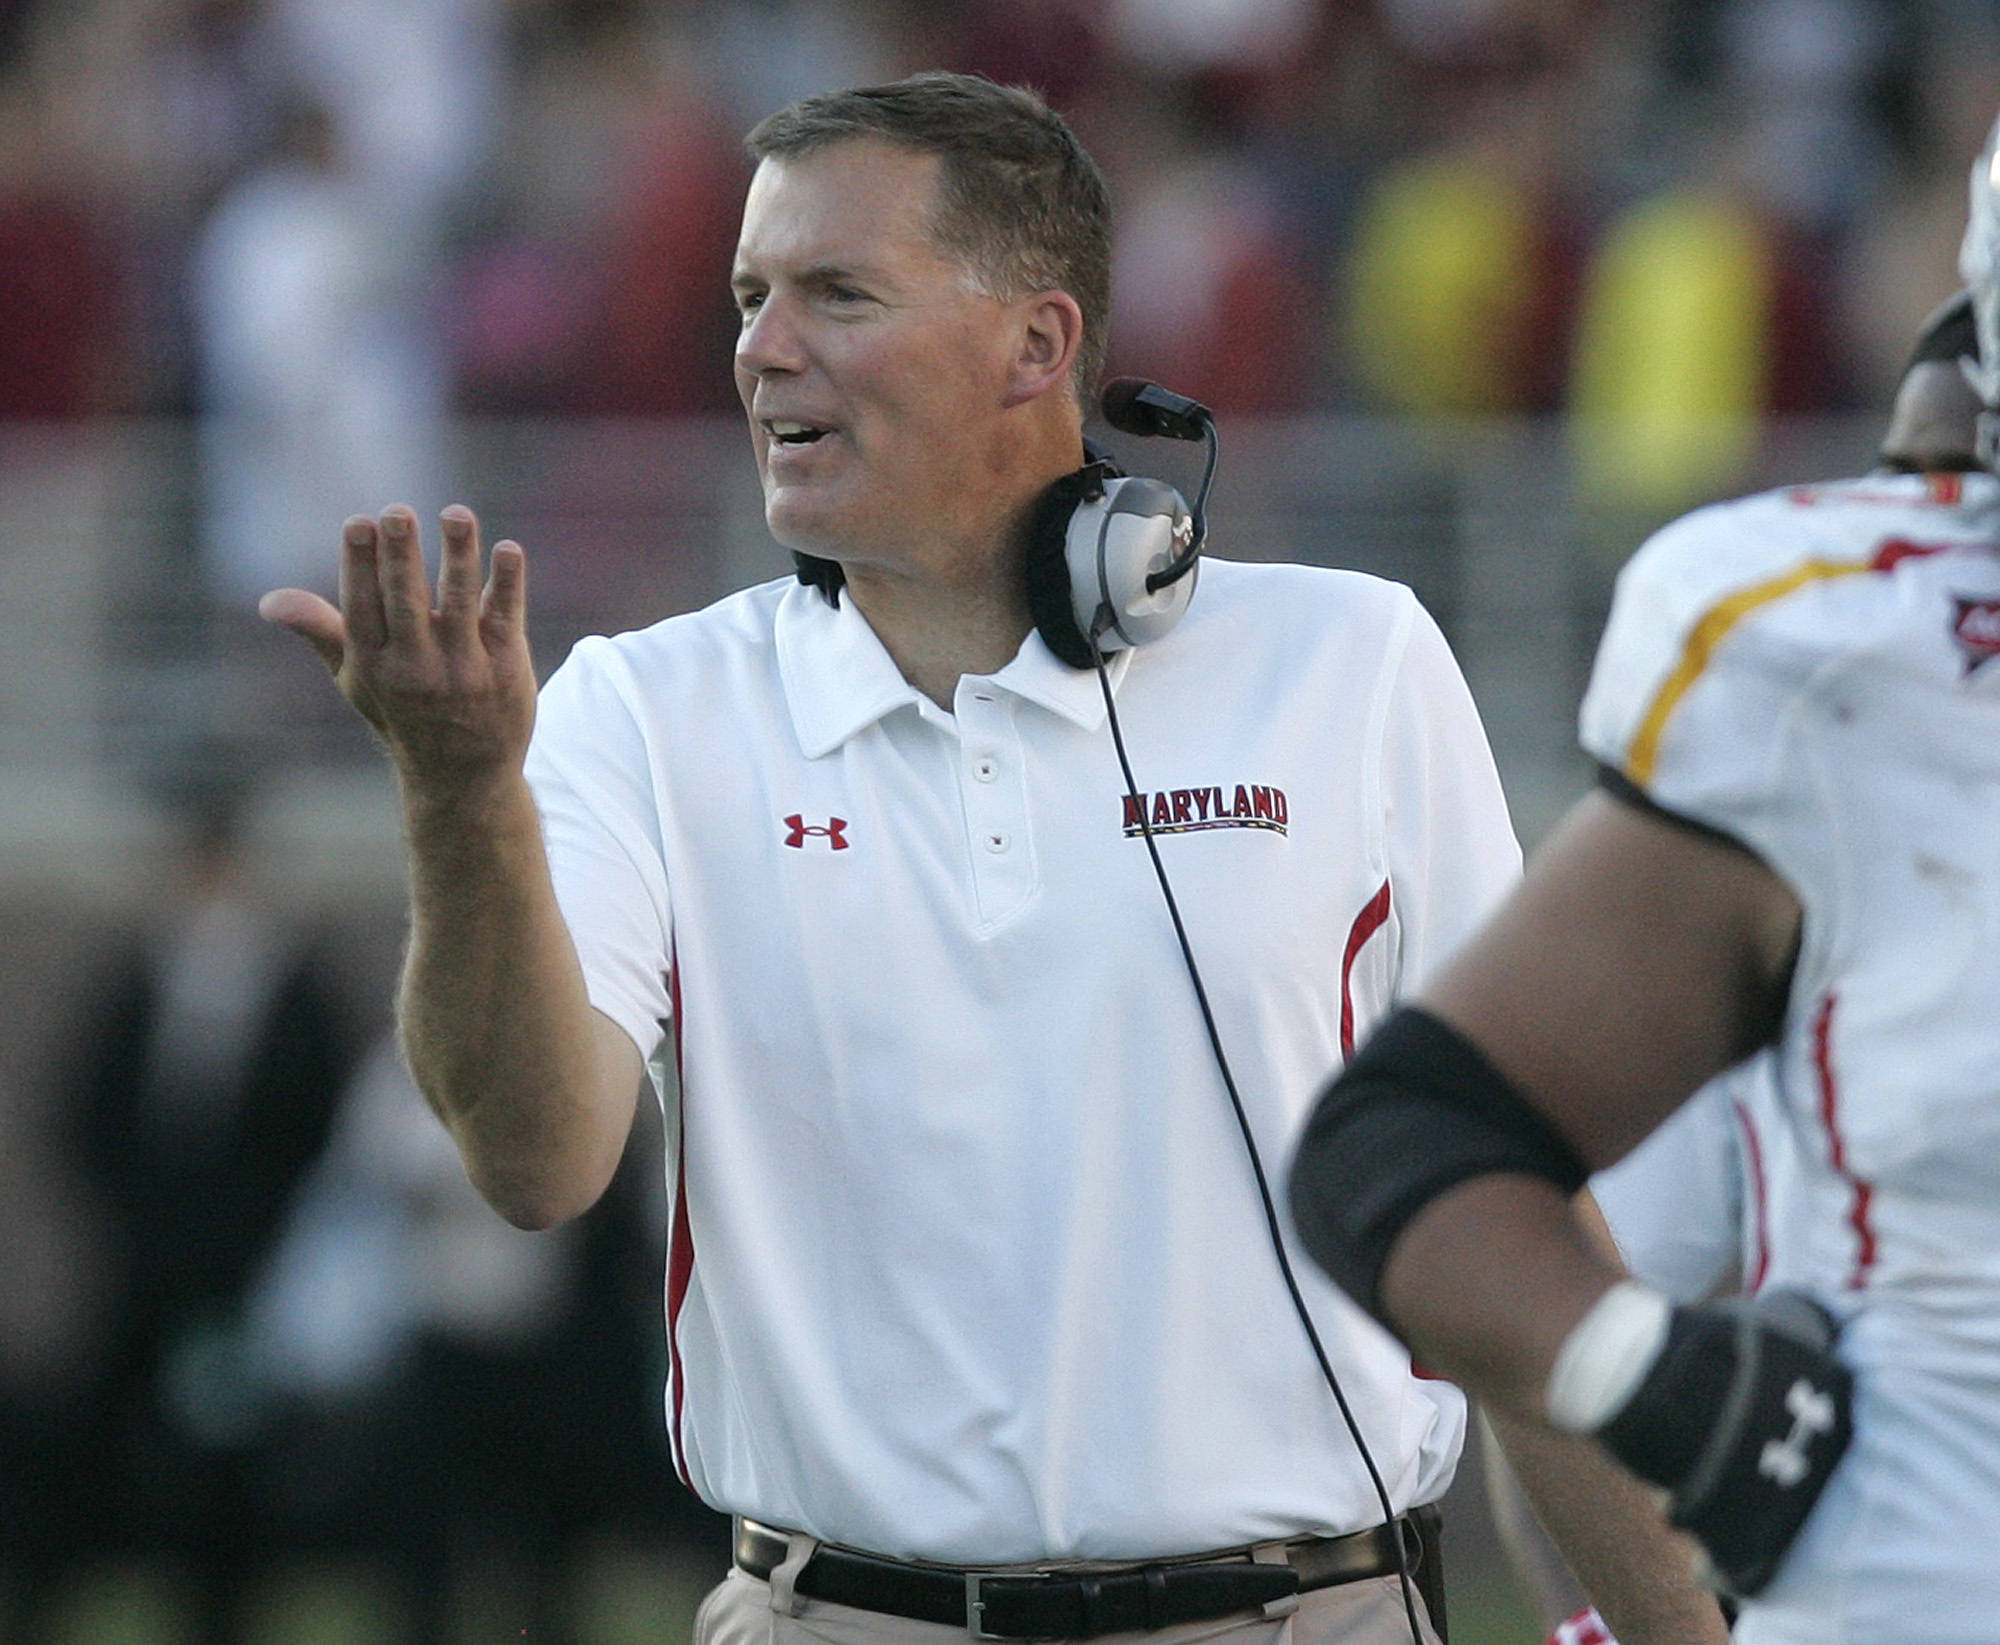 Maryland's head coach Randy Edsall celebrates a big play by his defense in the third quarter against FSU. (AP Photo/Steve Cannon)